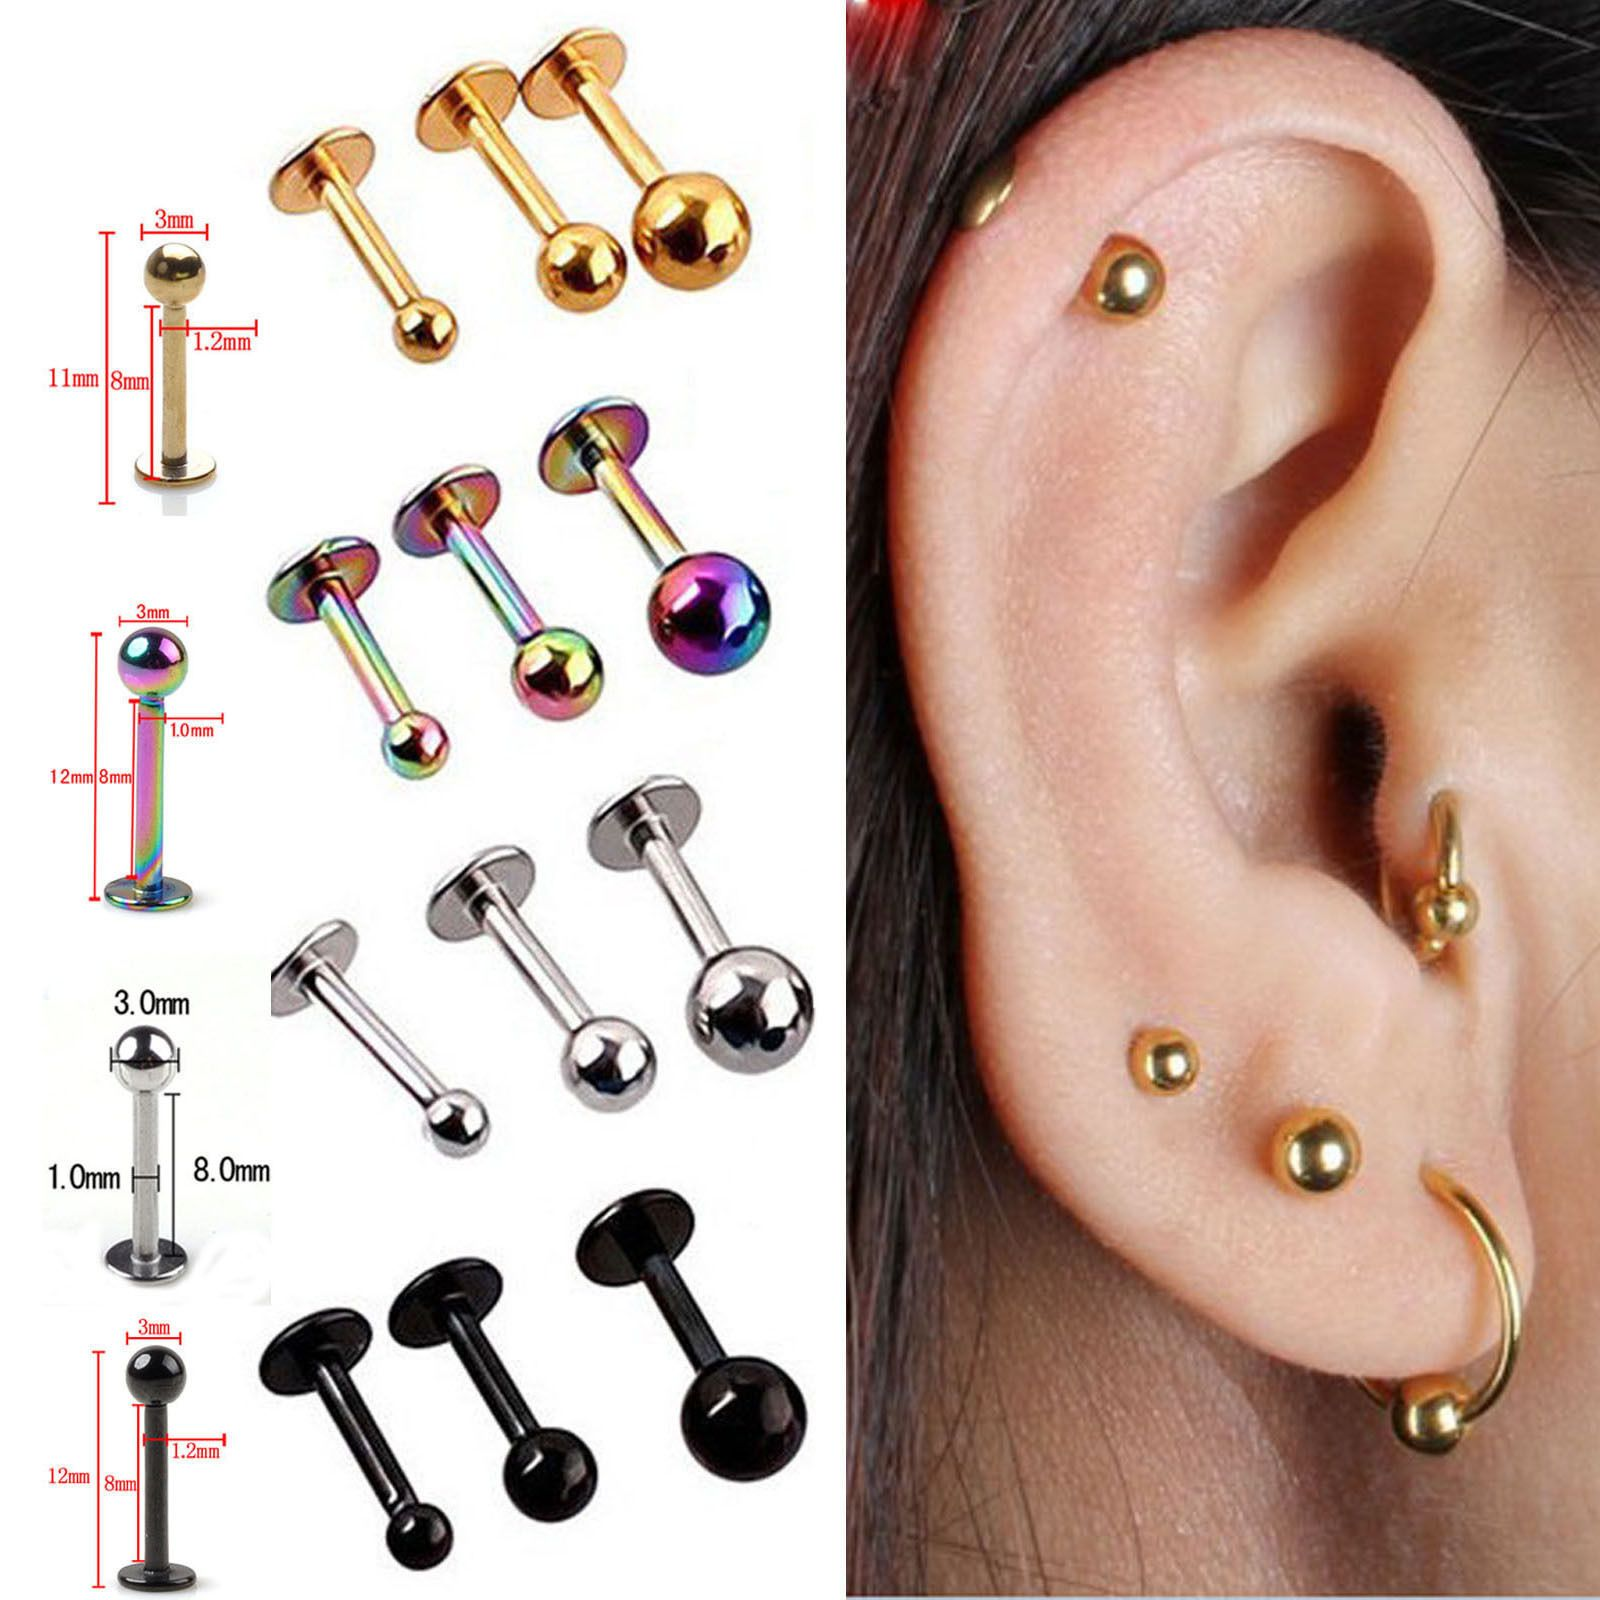 8848b0761 Best 5X Tragus Helix Bar - Cartilage Top Upper Ear Earring Labret Piercing  Jewel